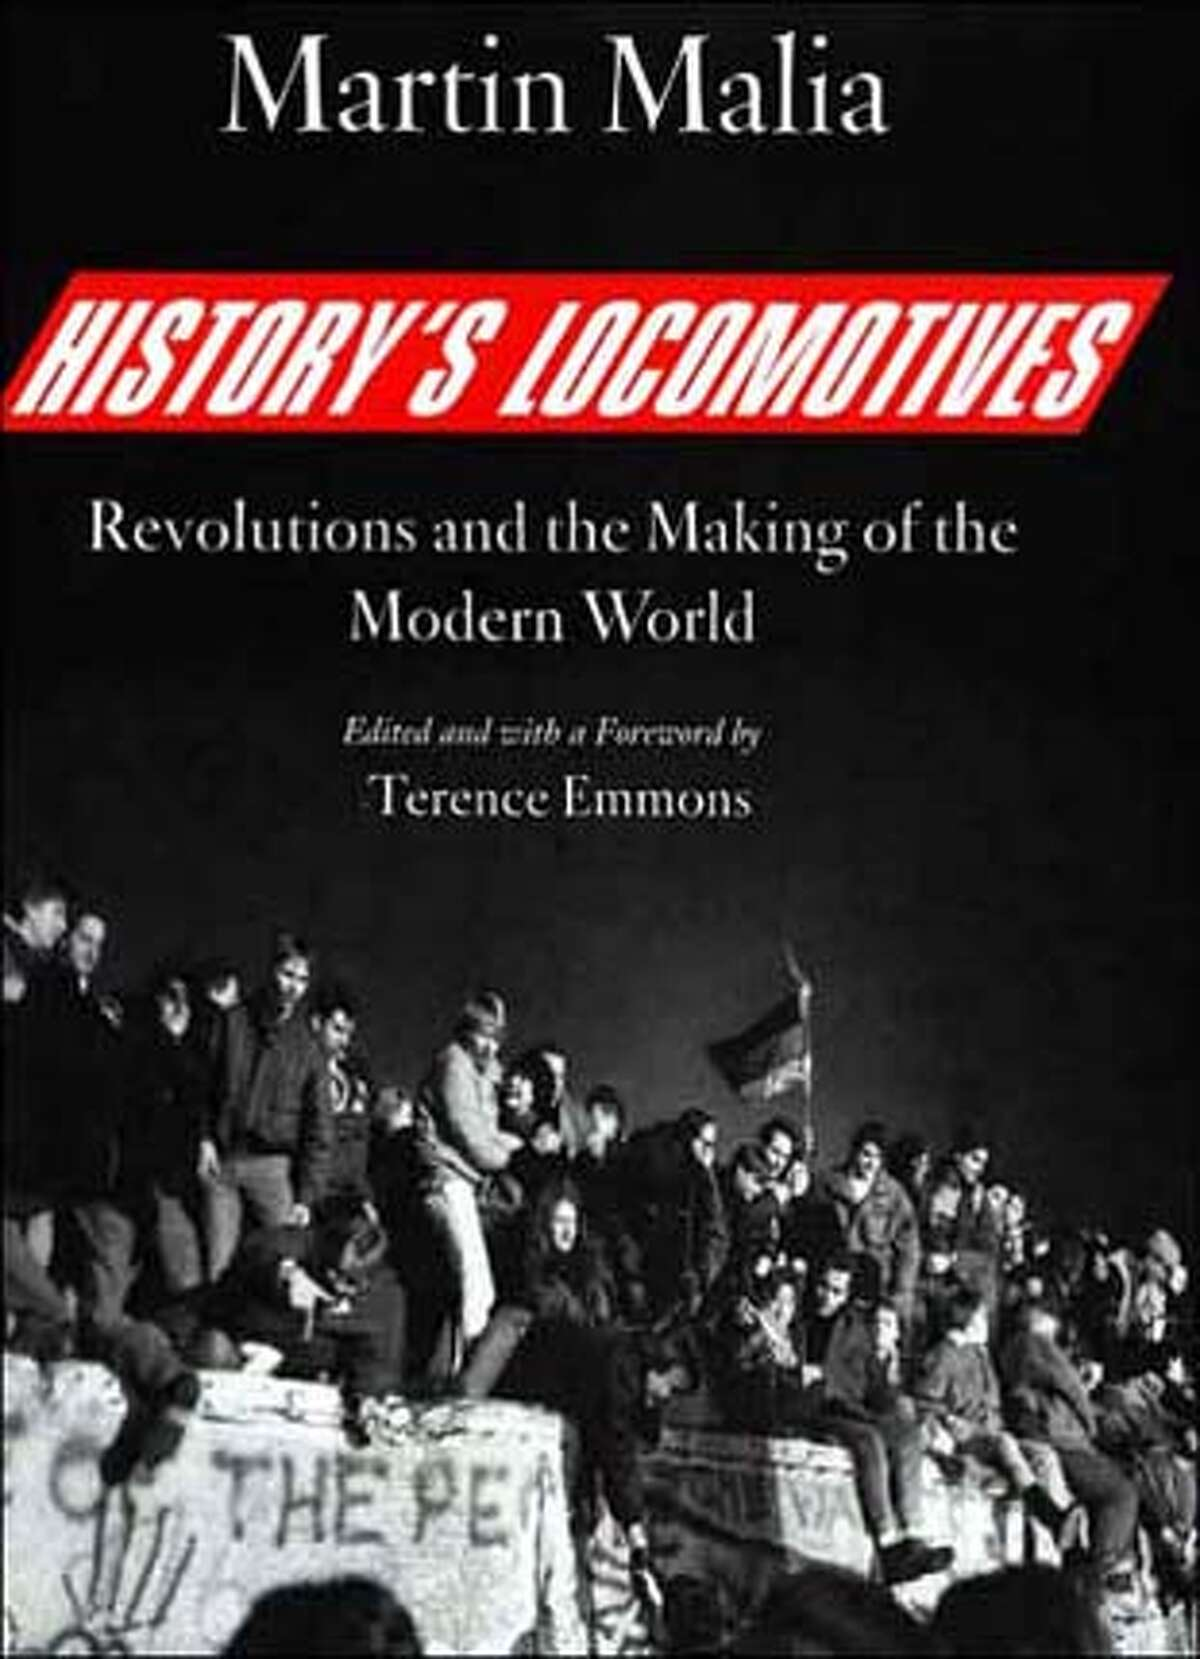 """""""History's Locomotives: Revolutions and the Making of the Modern World"""" by Martin Malia"""